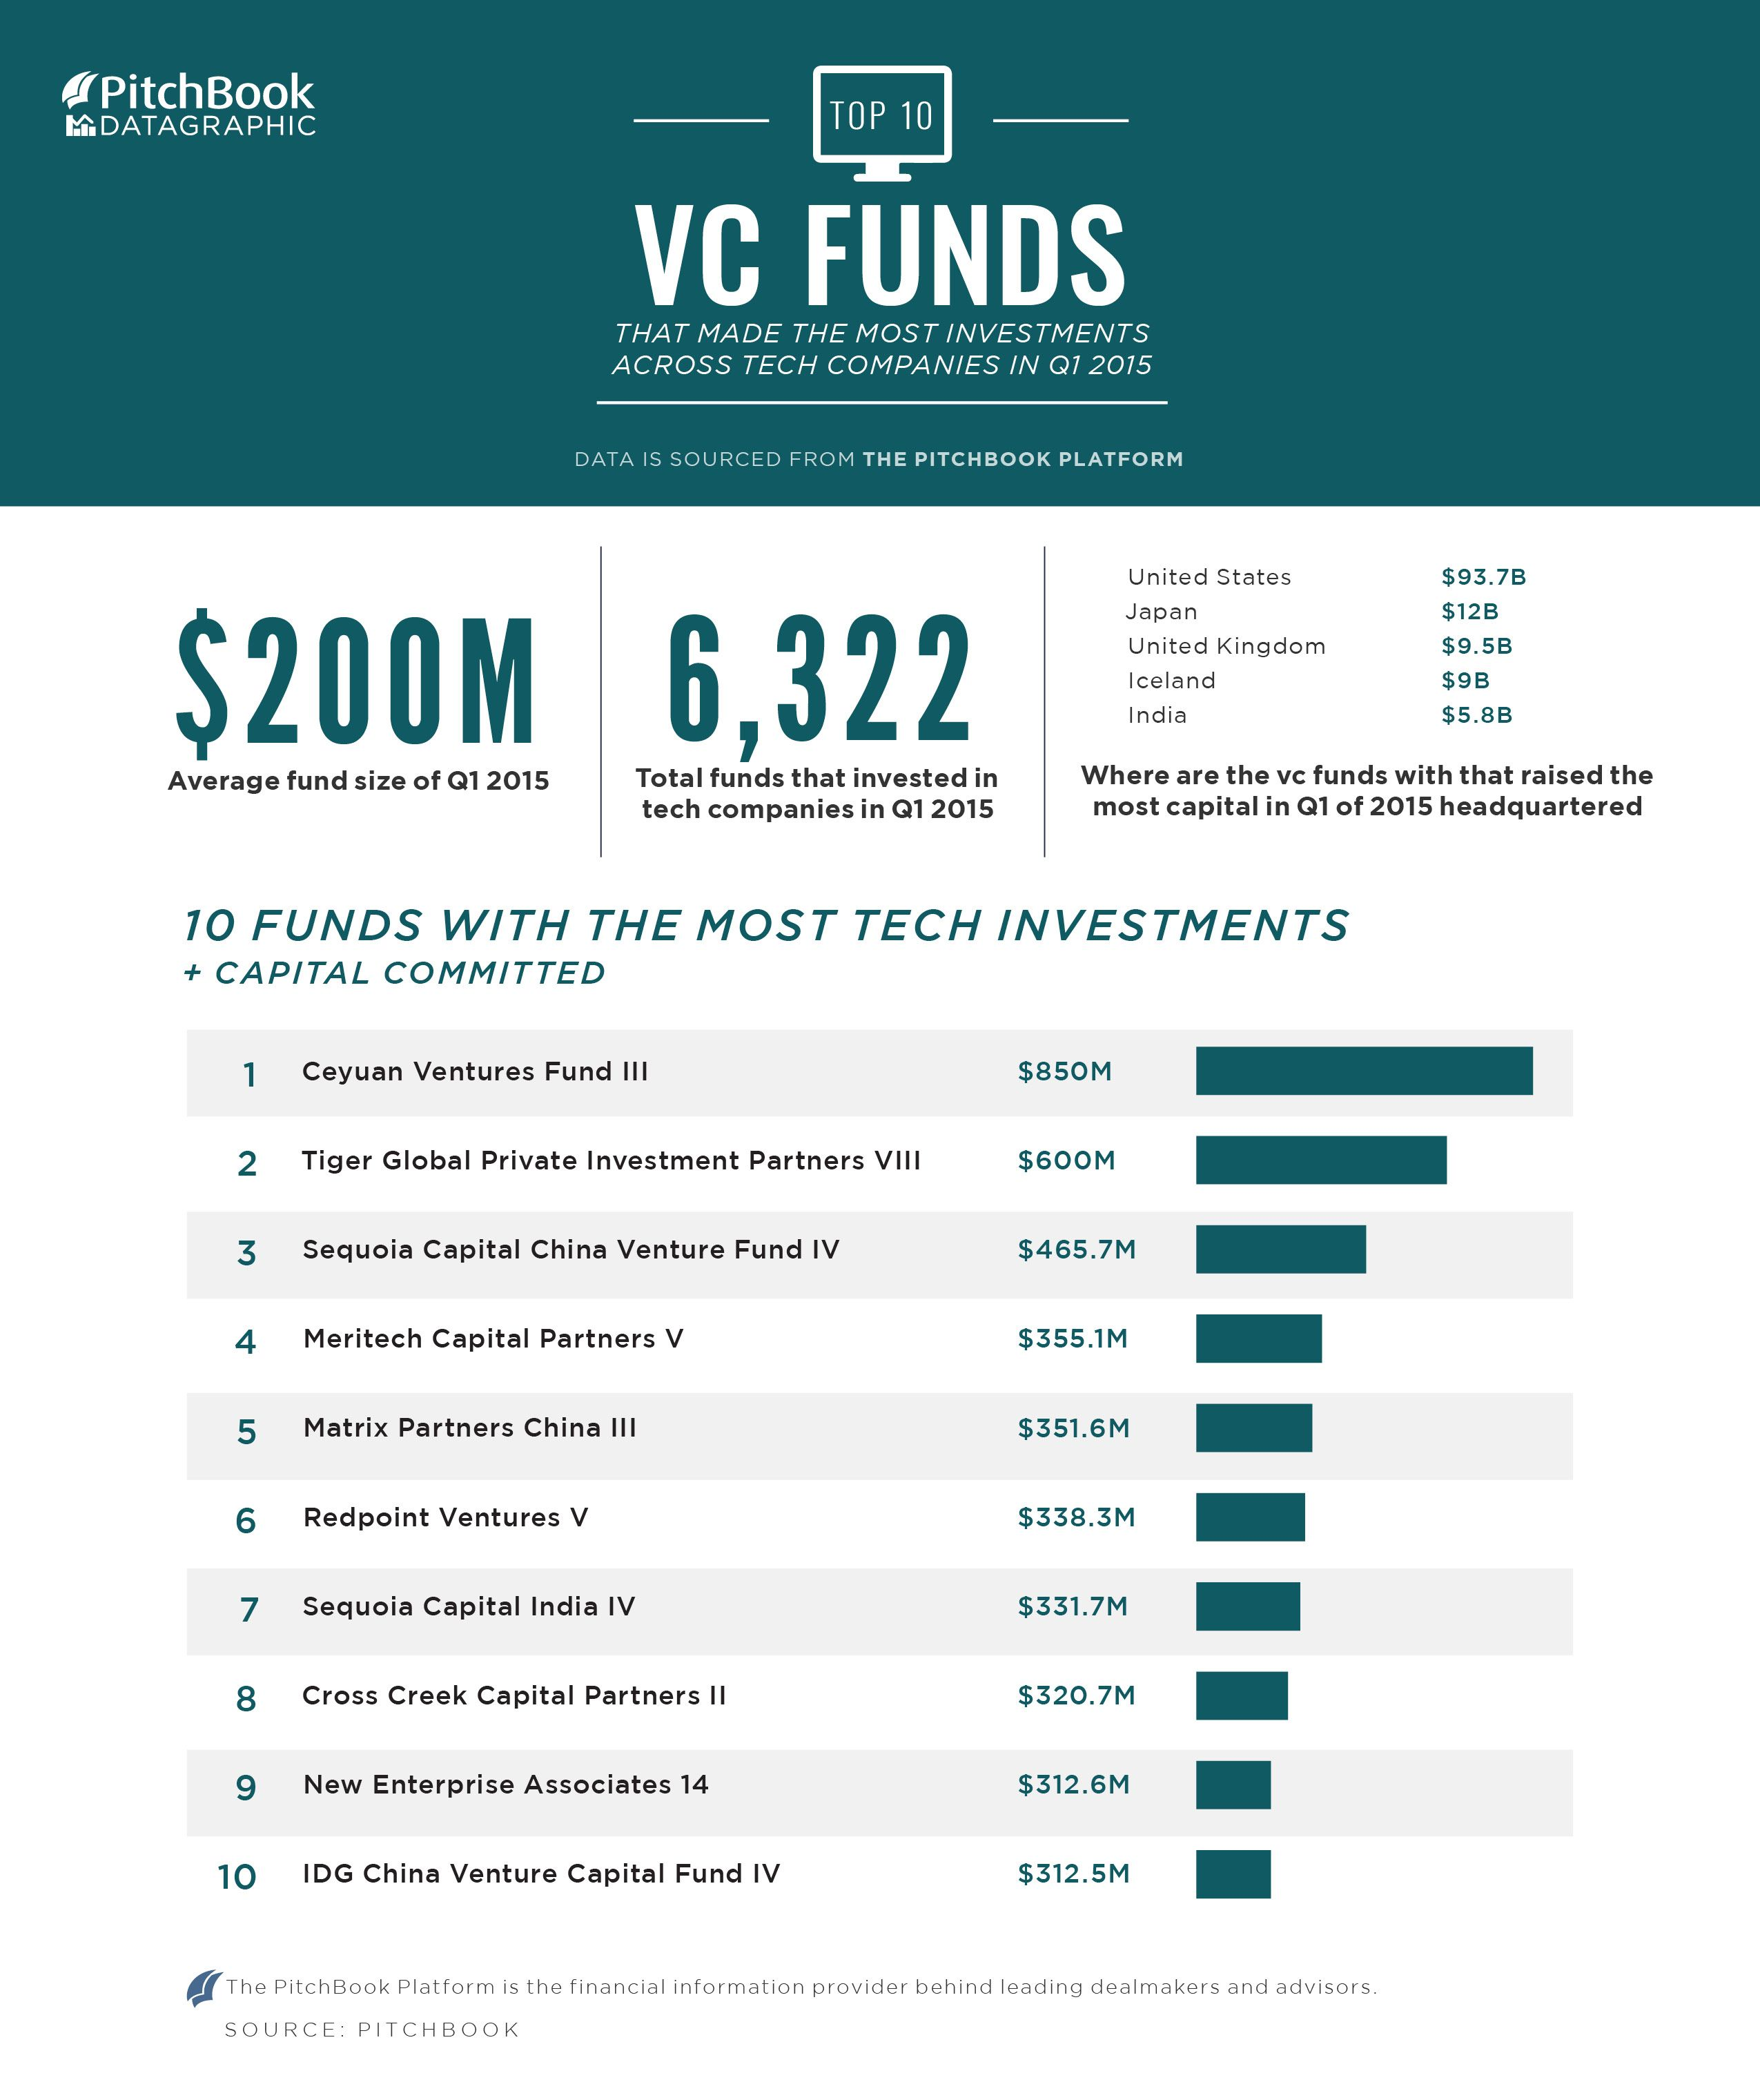 10 Funds Making The Most Tech Investments In Q1 2015 Investing Venture Capital Fund